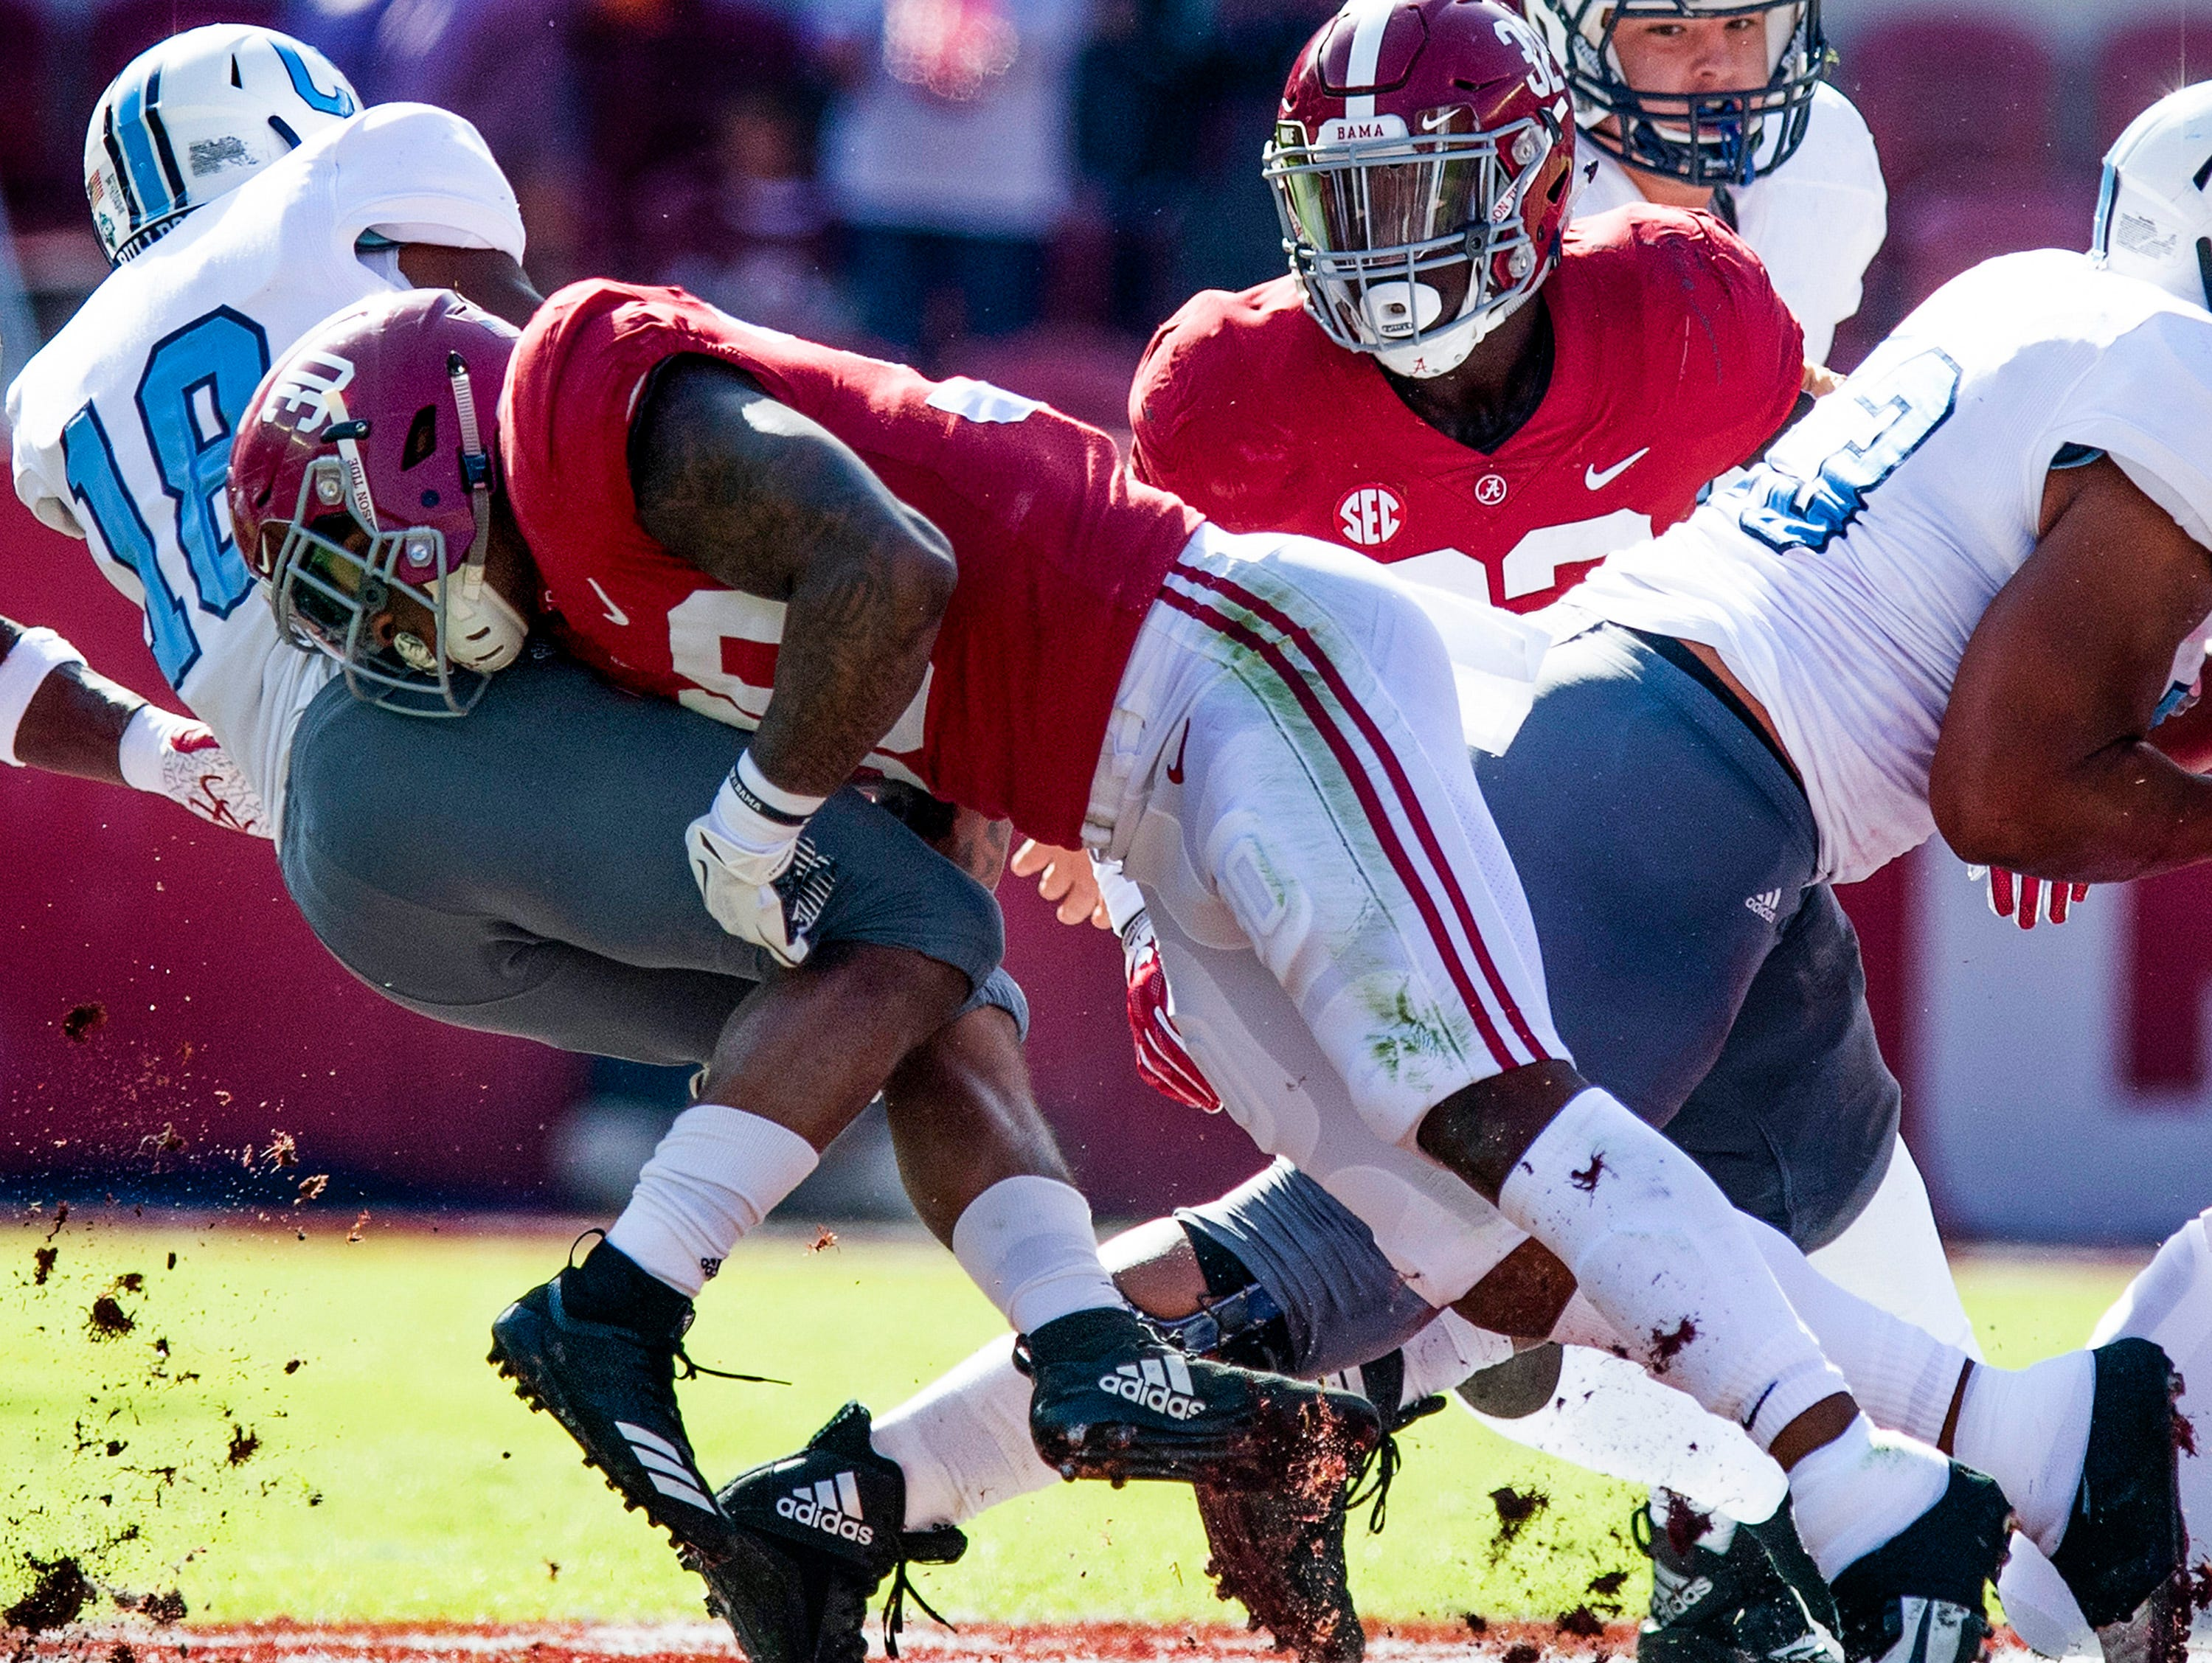 Alabama linebacker Mack Wilson (30) stops Citadel A-Back Dante Smith (18) In first half action at Bryant-Denny Stadium in Tuscaloosa, Ala., on Saturday November 17, 2018.